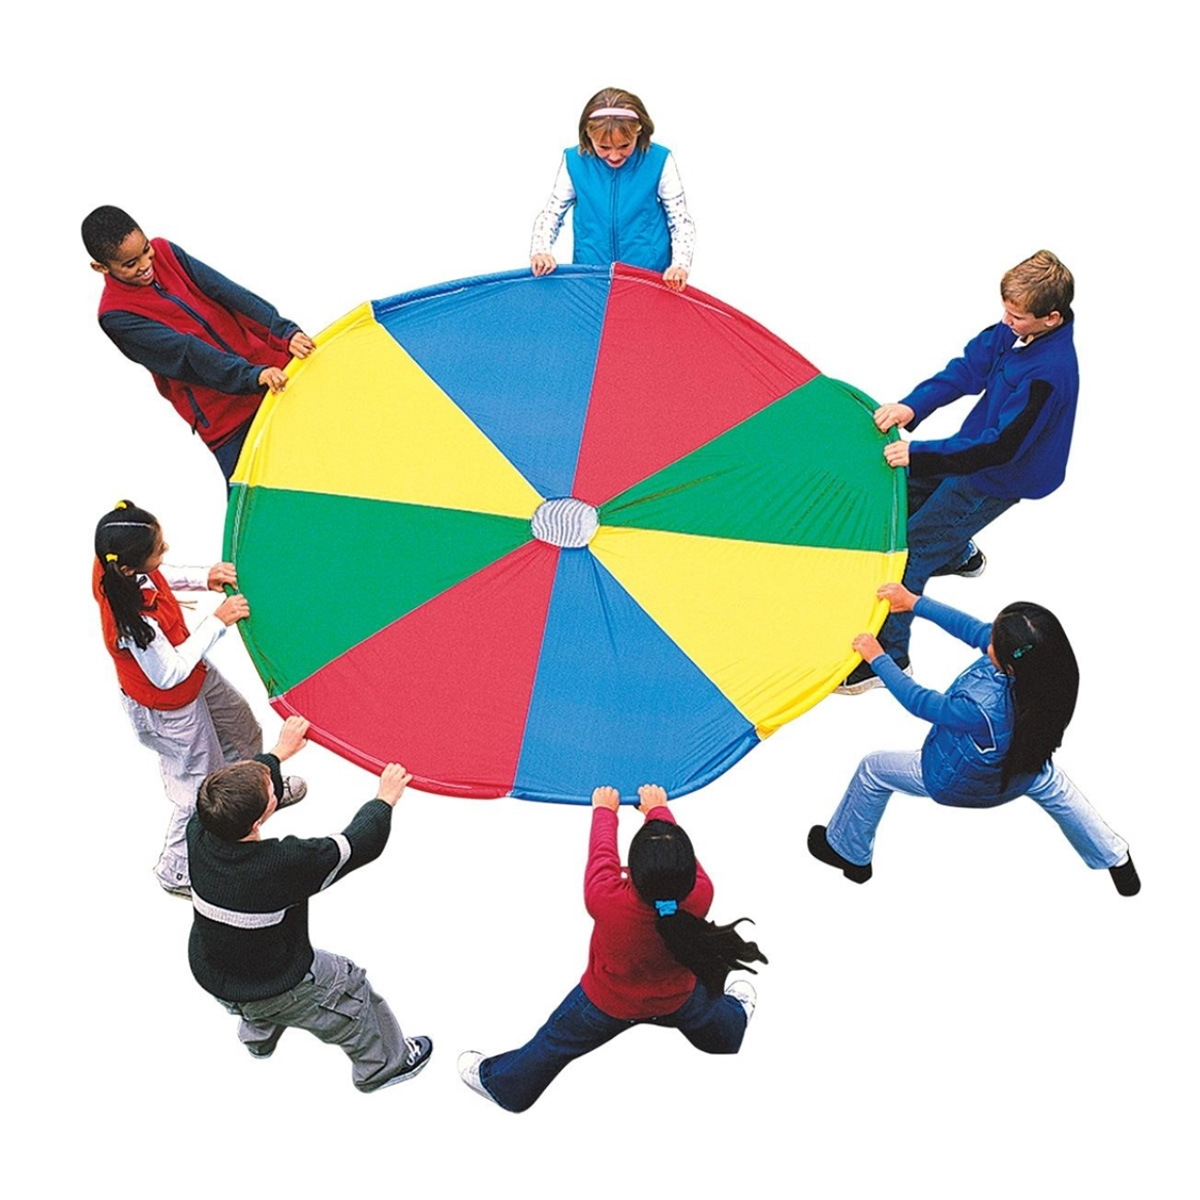 small gym parachute with a small group of students